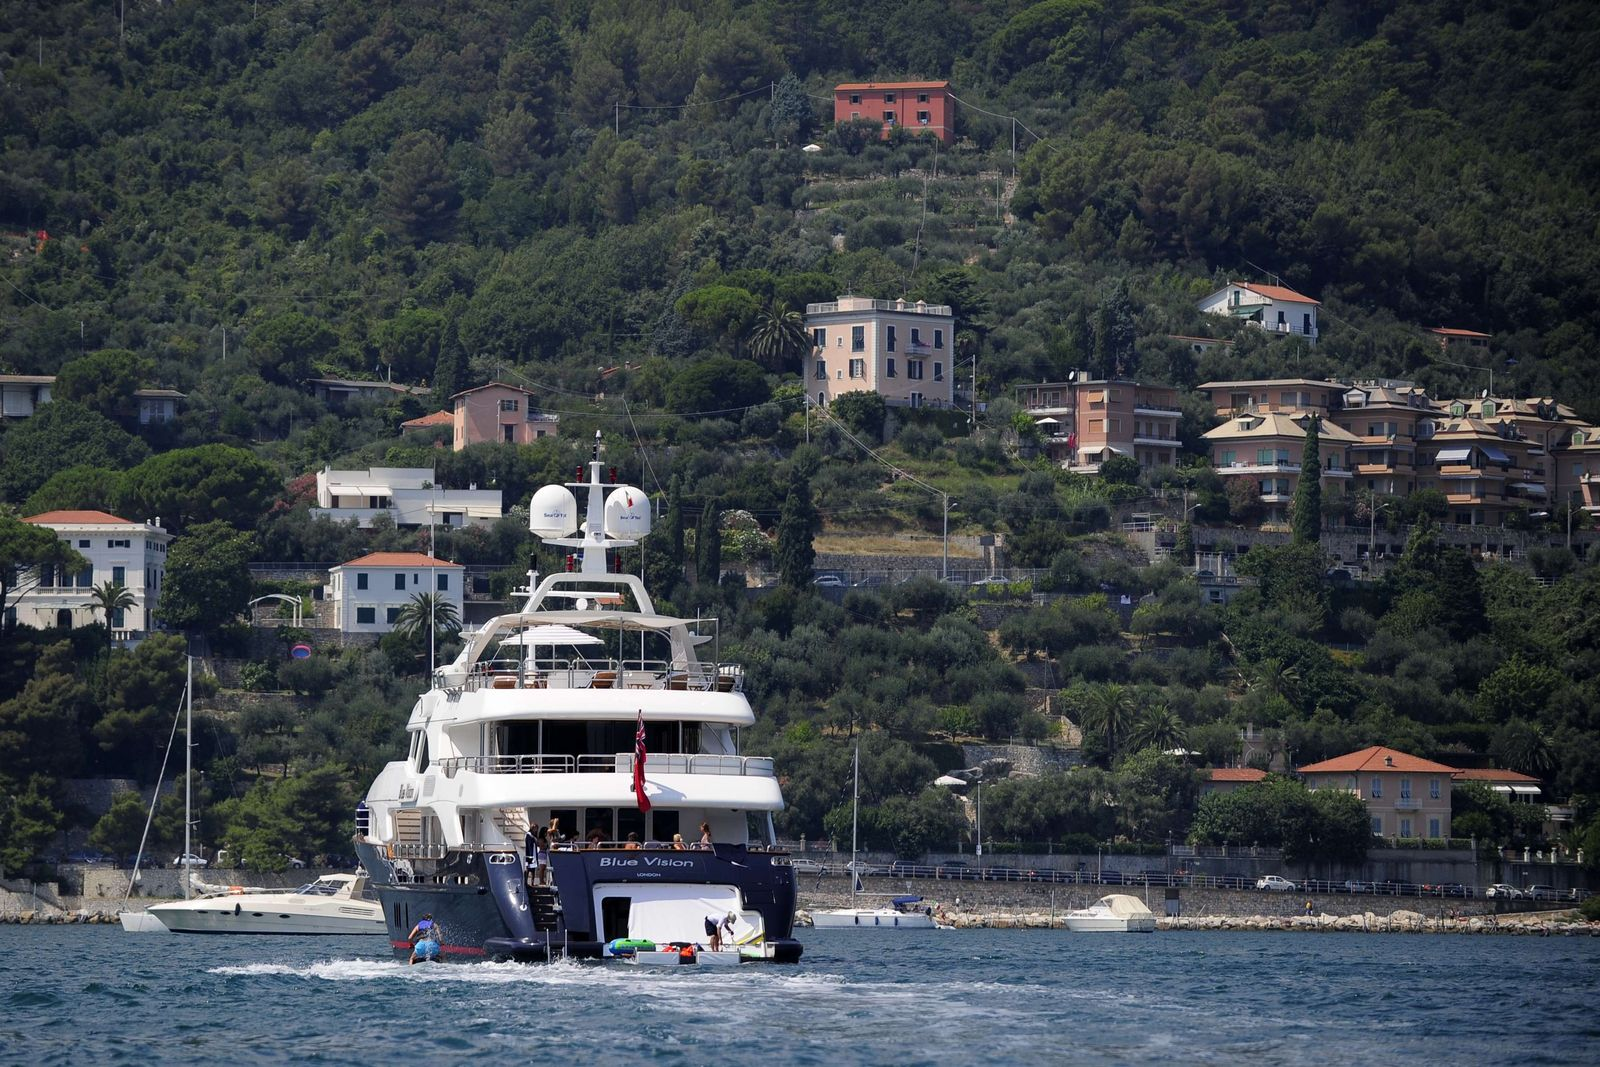 ITALY-SUMMER-TOURISM-YACHT-LUXURY